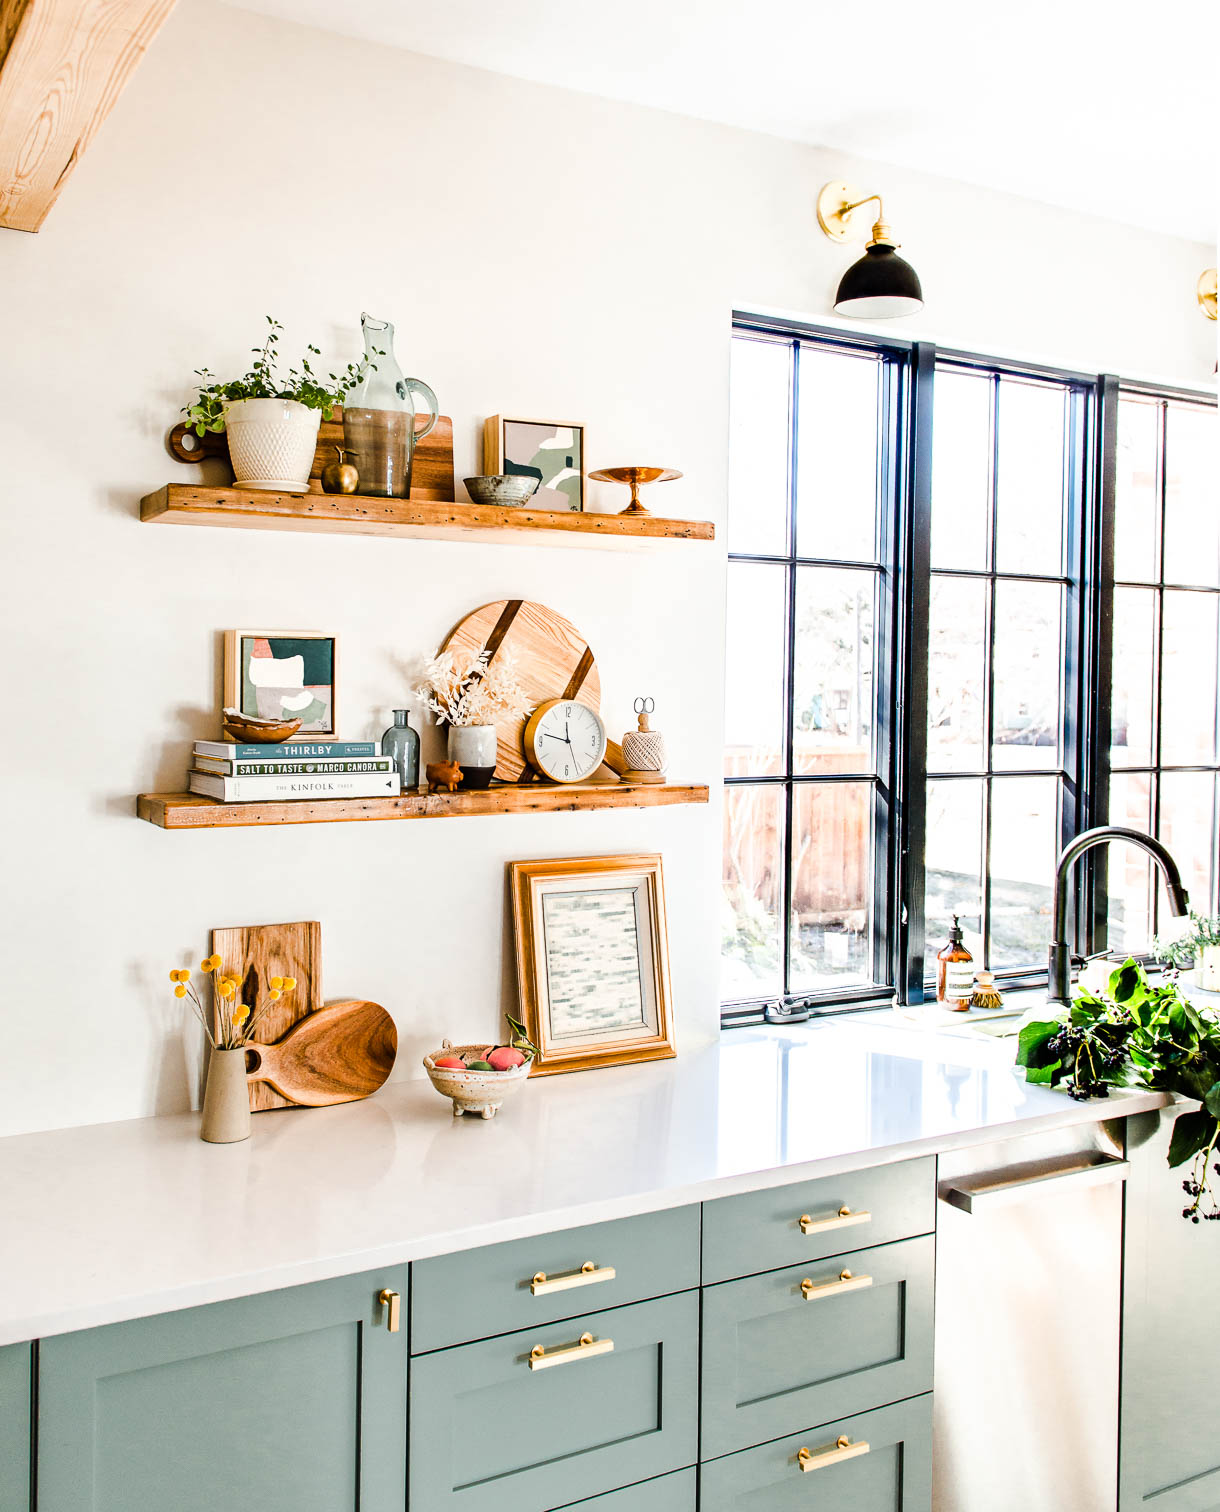 reclaimed wood shelves near frameless window in kitchen